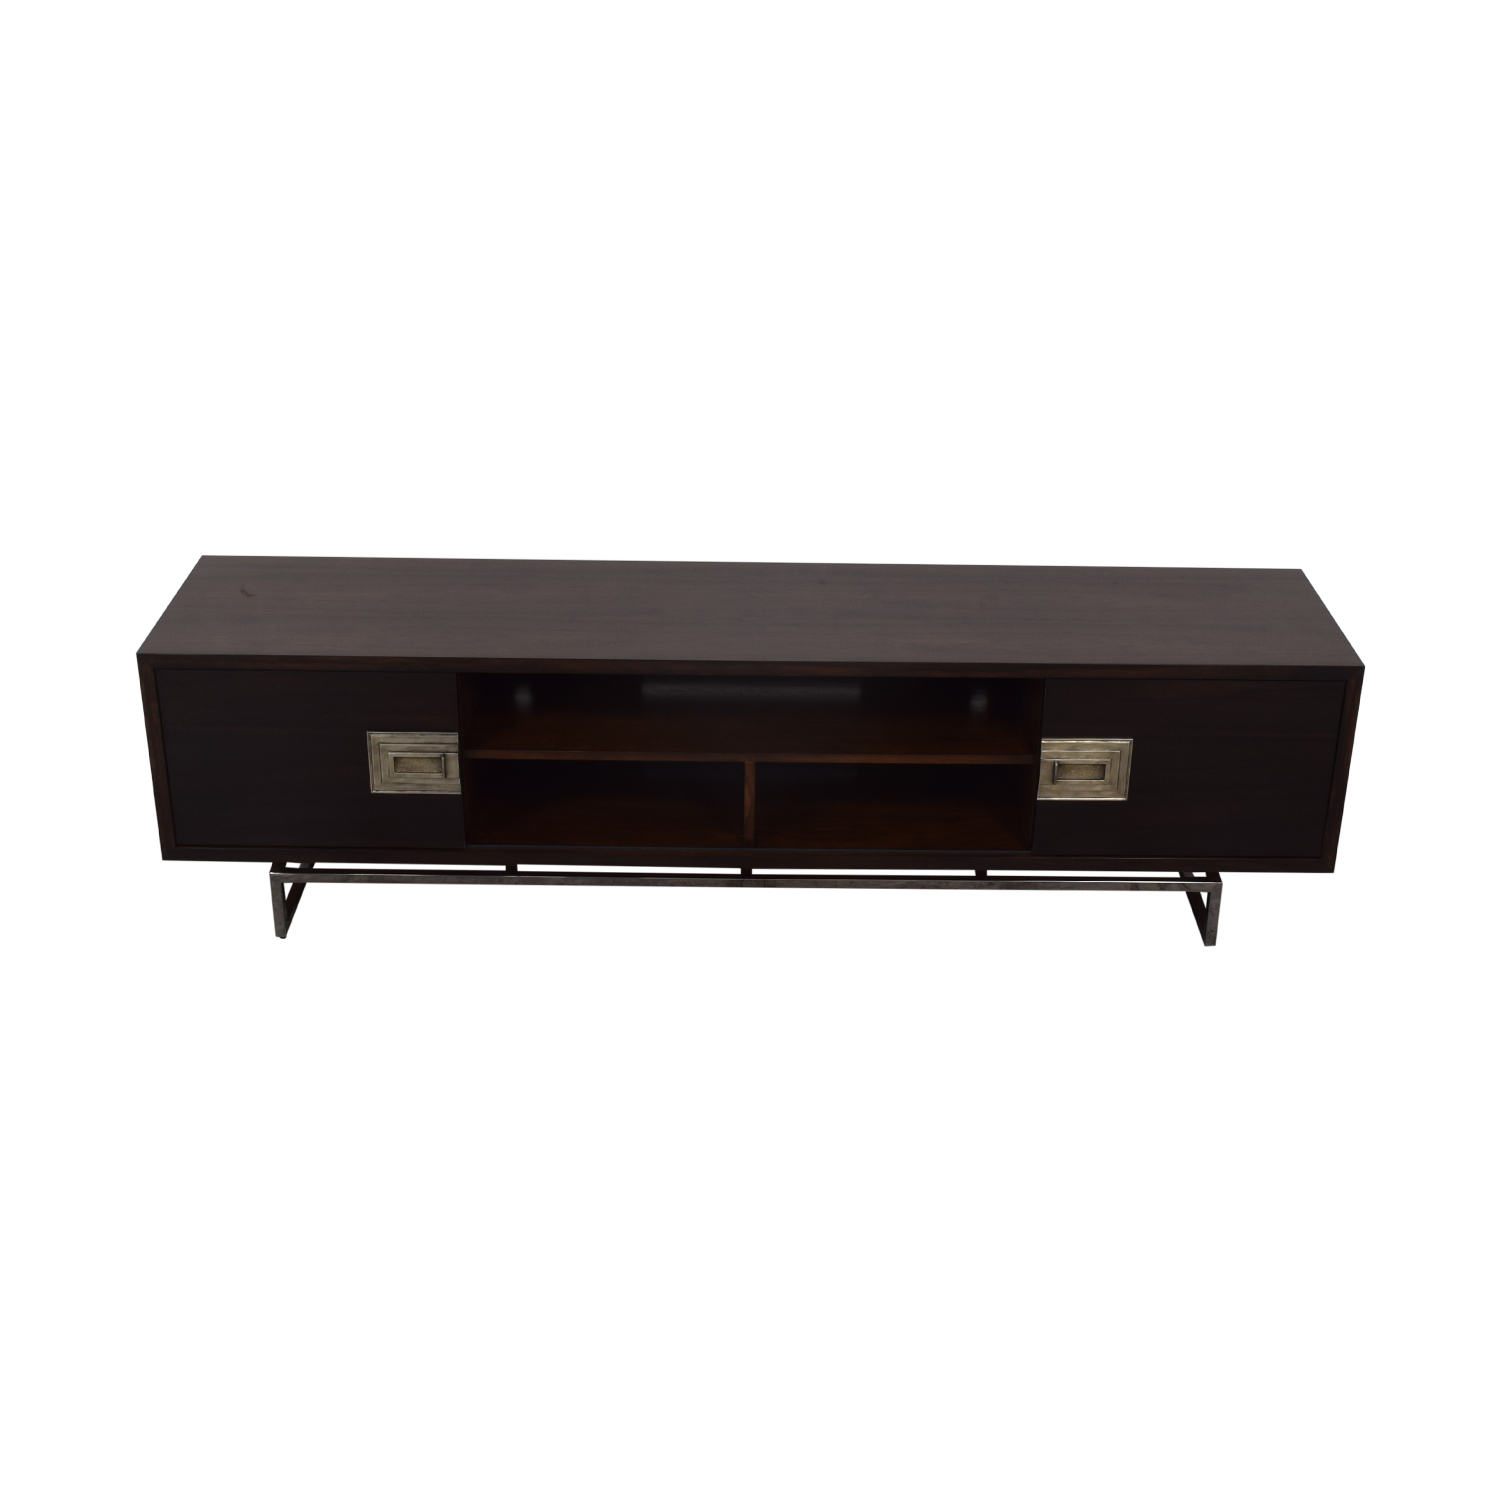 Century Furniture Chin Hua Turpan Low Entertainment Console / Media Units